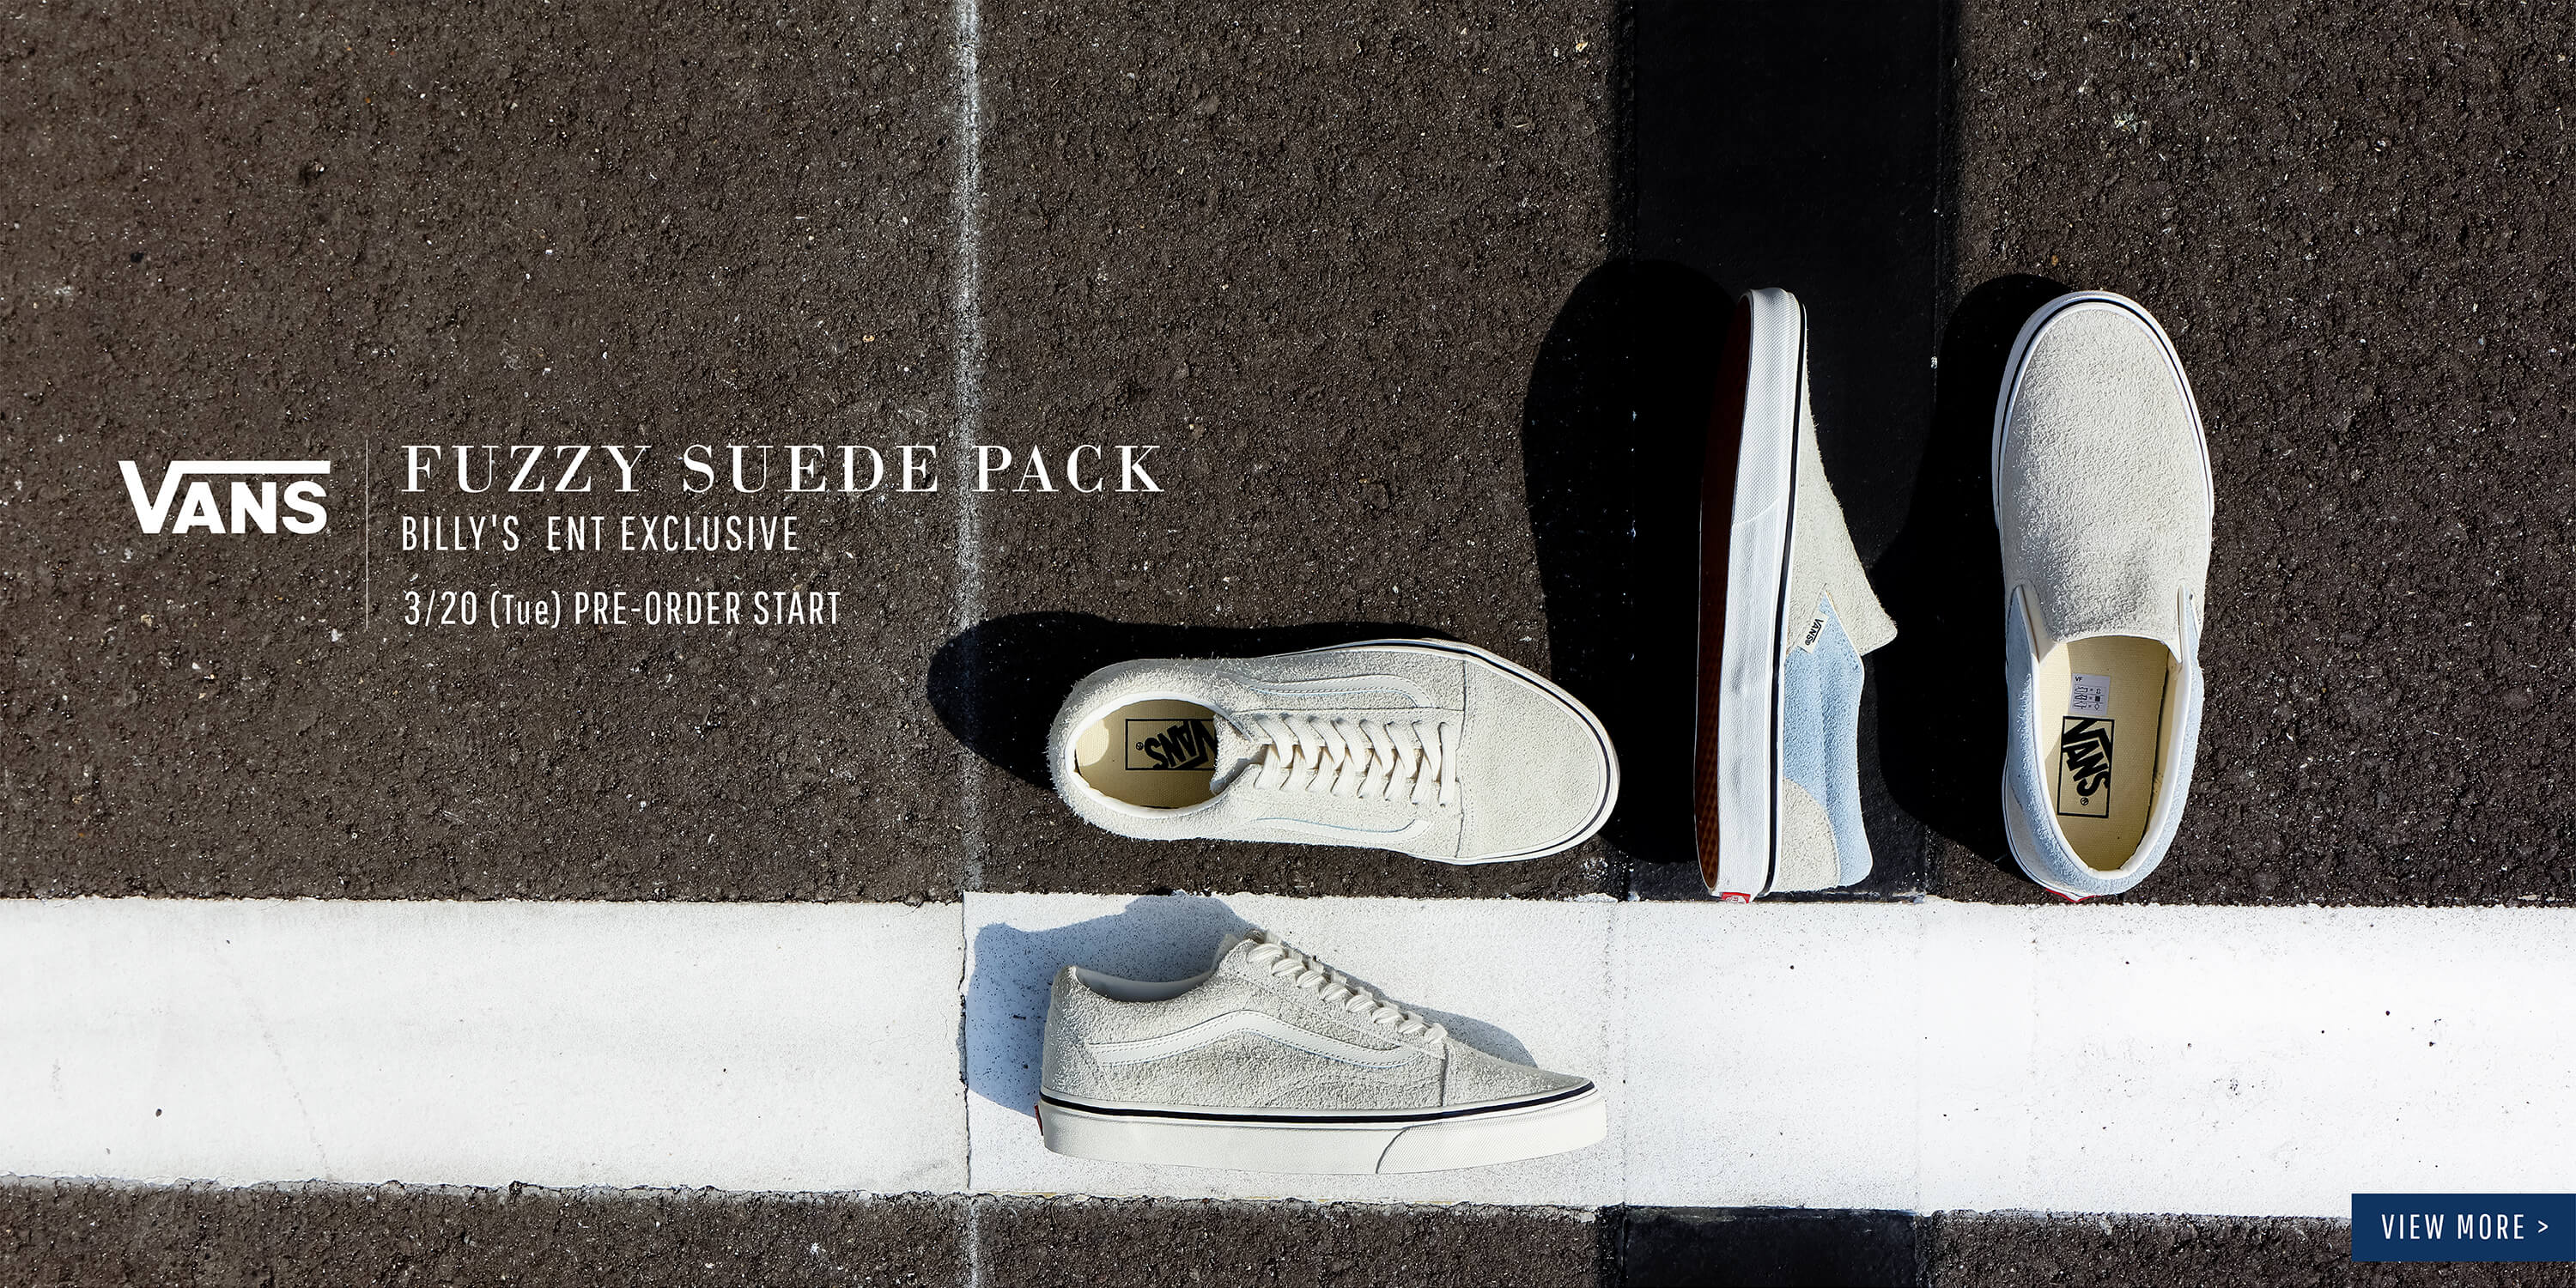 FUZZY SUEDE PACK